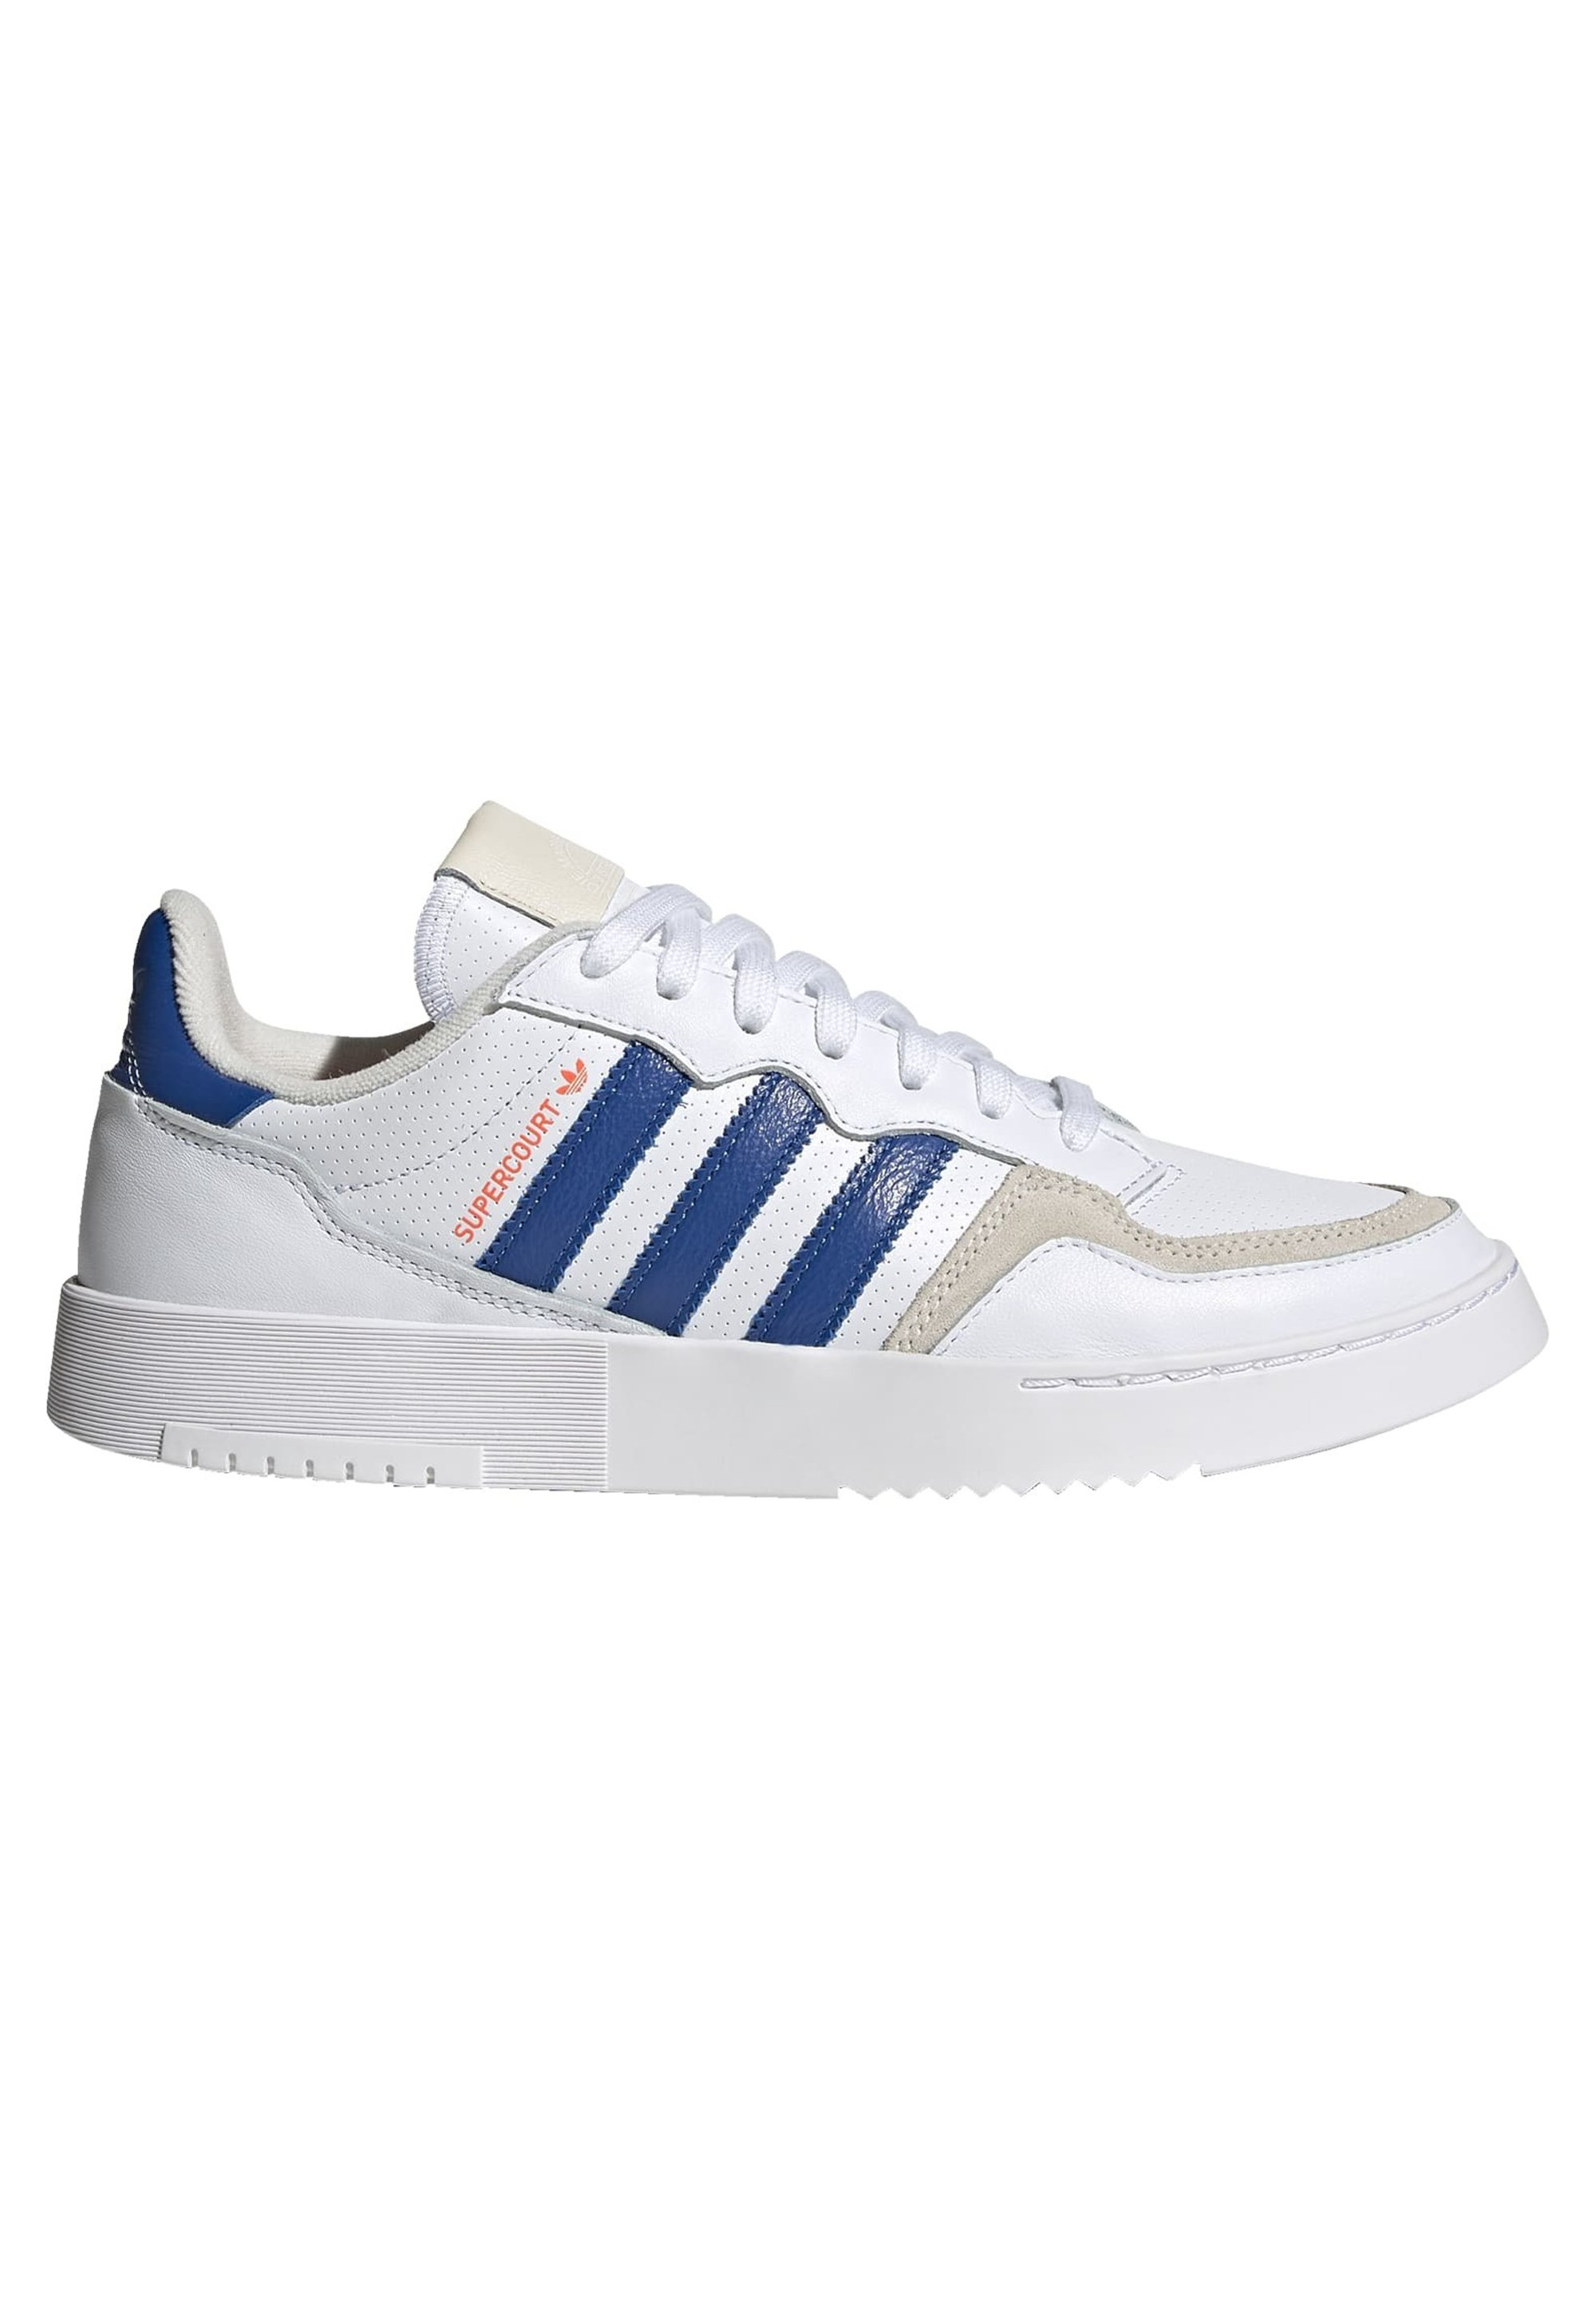 adidas Originals SUPERCOURT SHOES - Sneaker low - white/weiß - Herrenschuhe Nb8hV